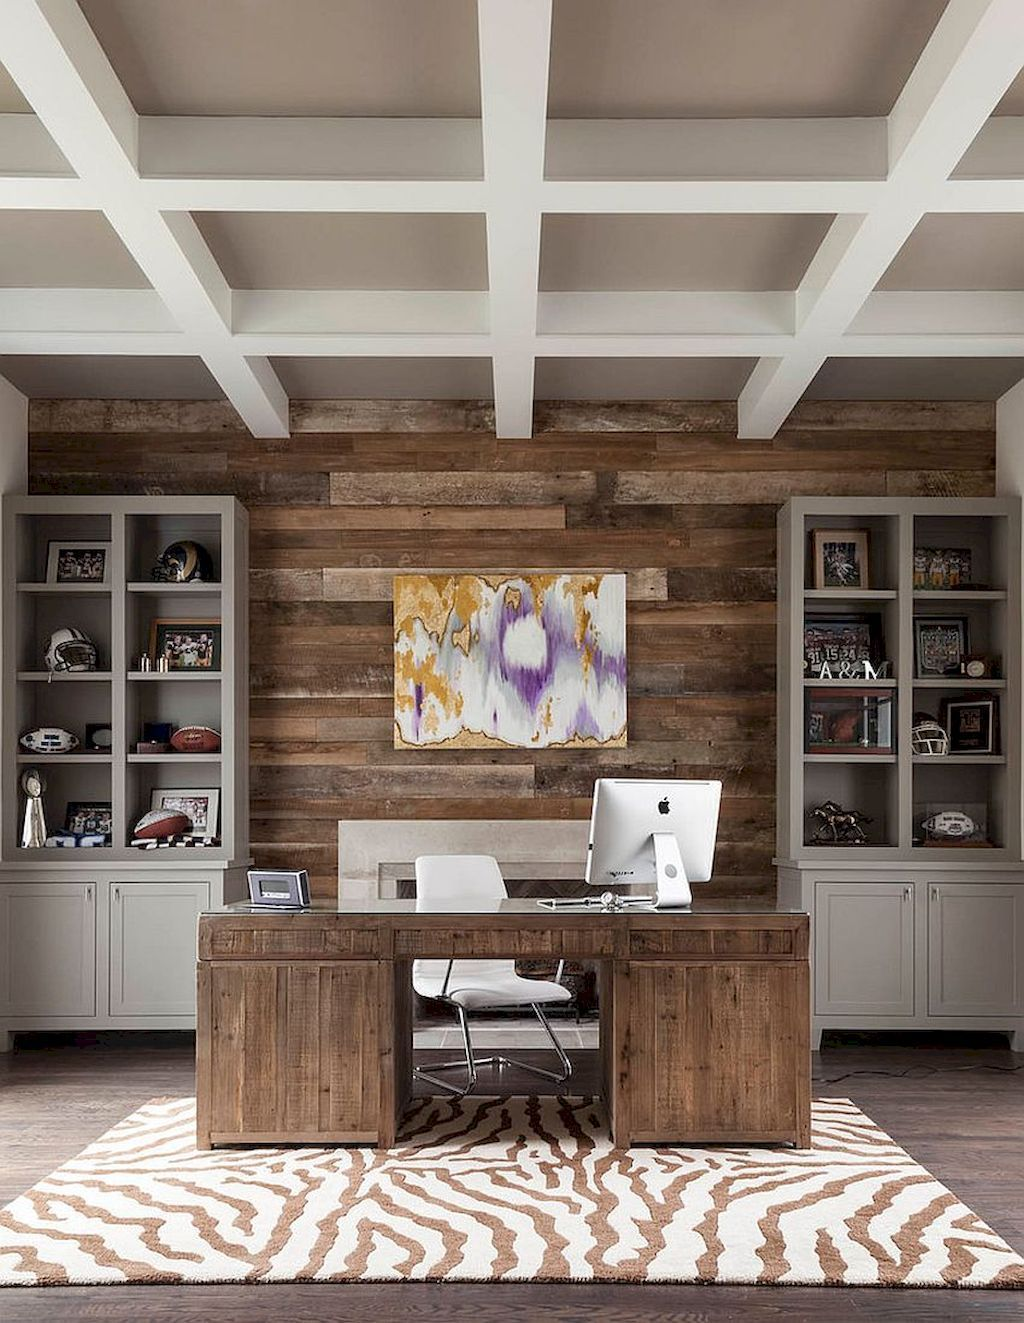 Cool 75 Best Contemporary Home Office Design Ideas  Https://homstuff.com/2017/09/08/75 Best Contemporary Home Office Design  Ideas/